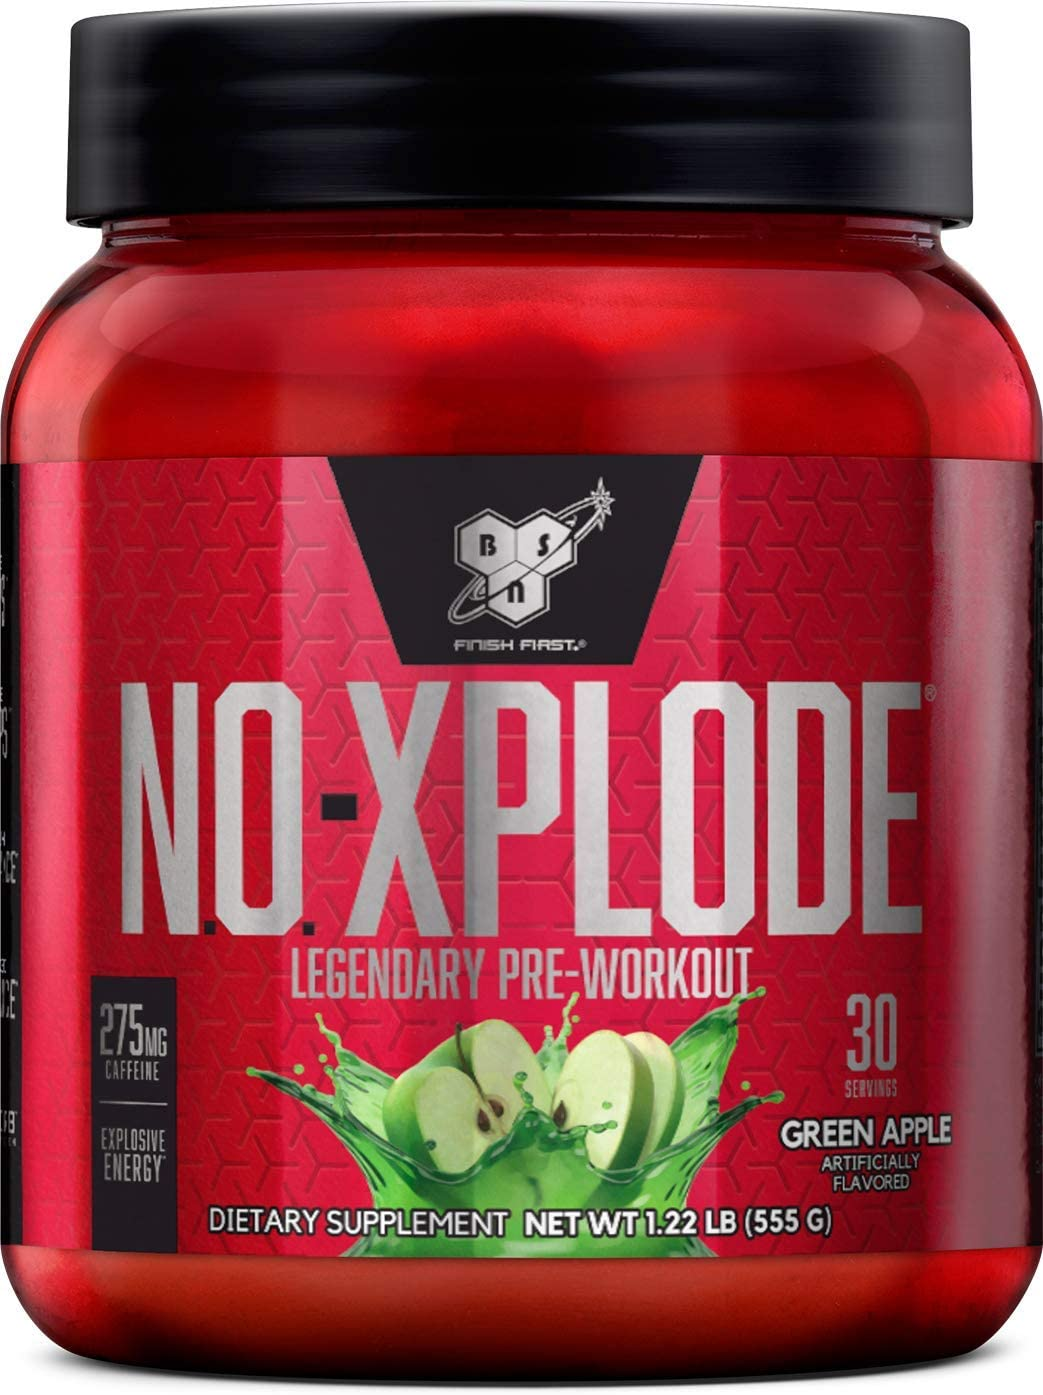 BSN N.O.-XPLODE Pre-Workout Supplement with Creatine, Beta-Alanine, and Energy, Flavor: Green Apple, 30 Servings